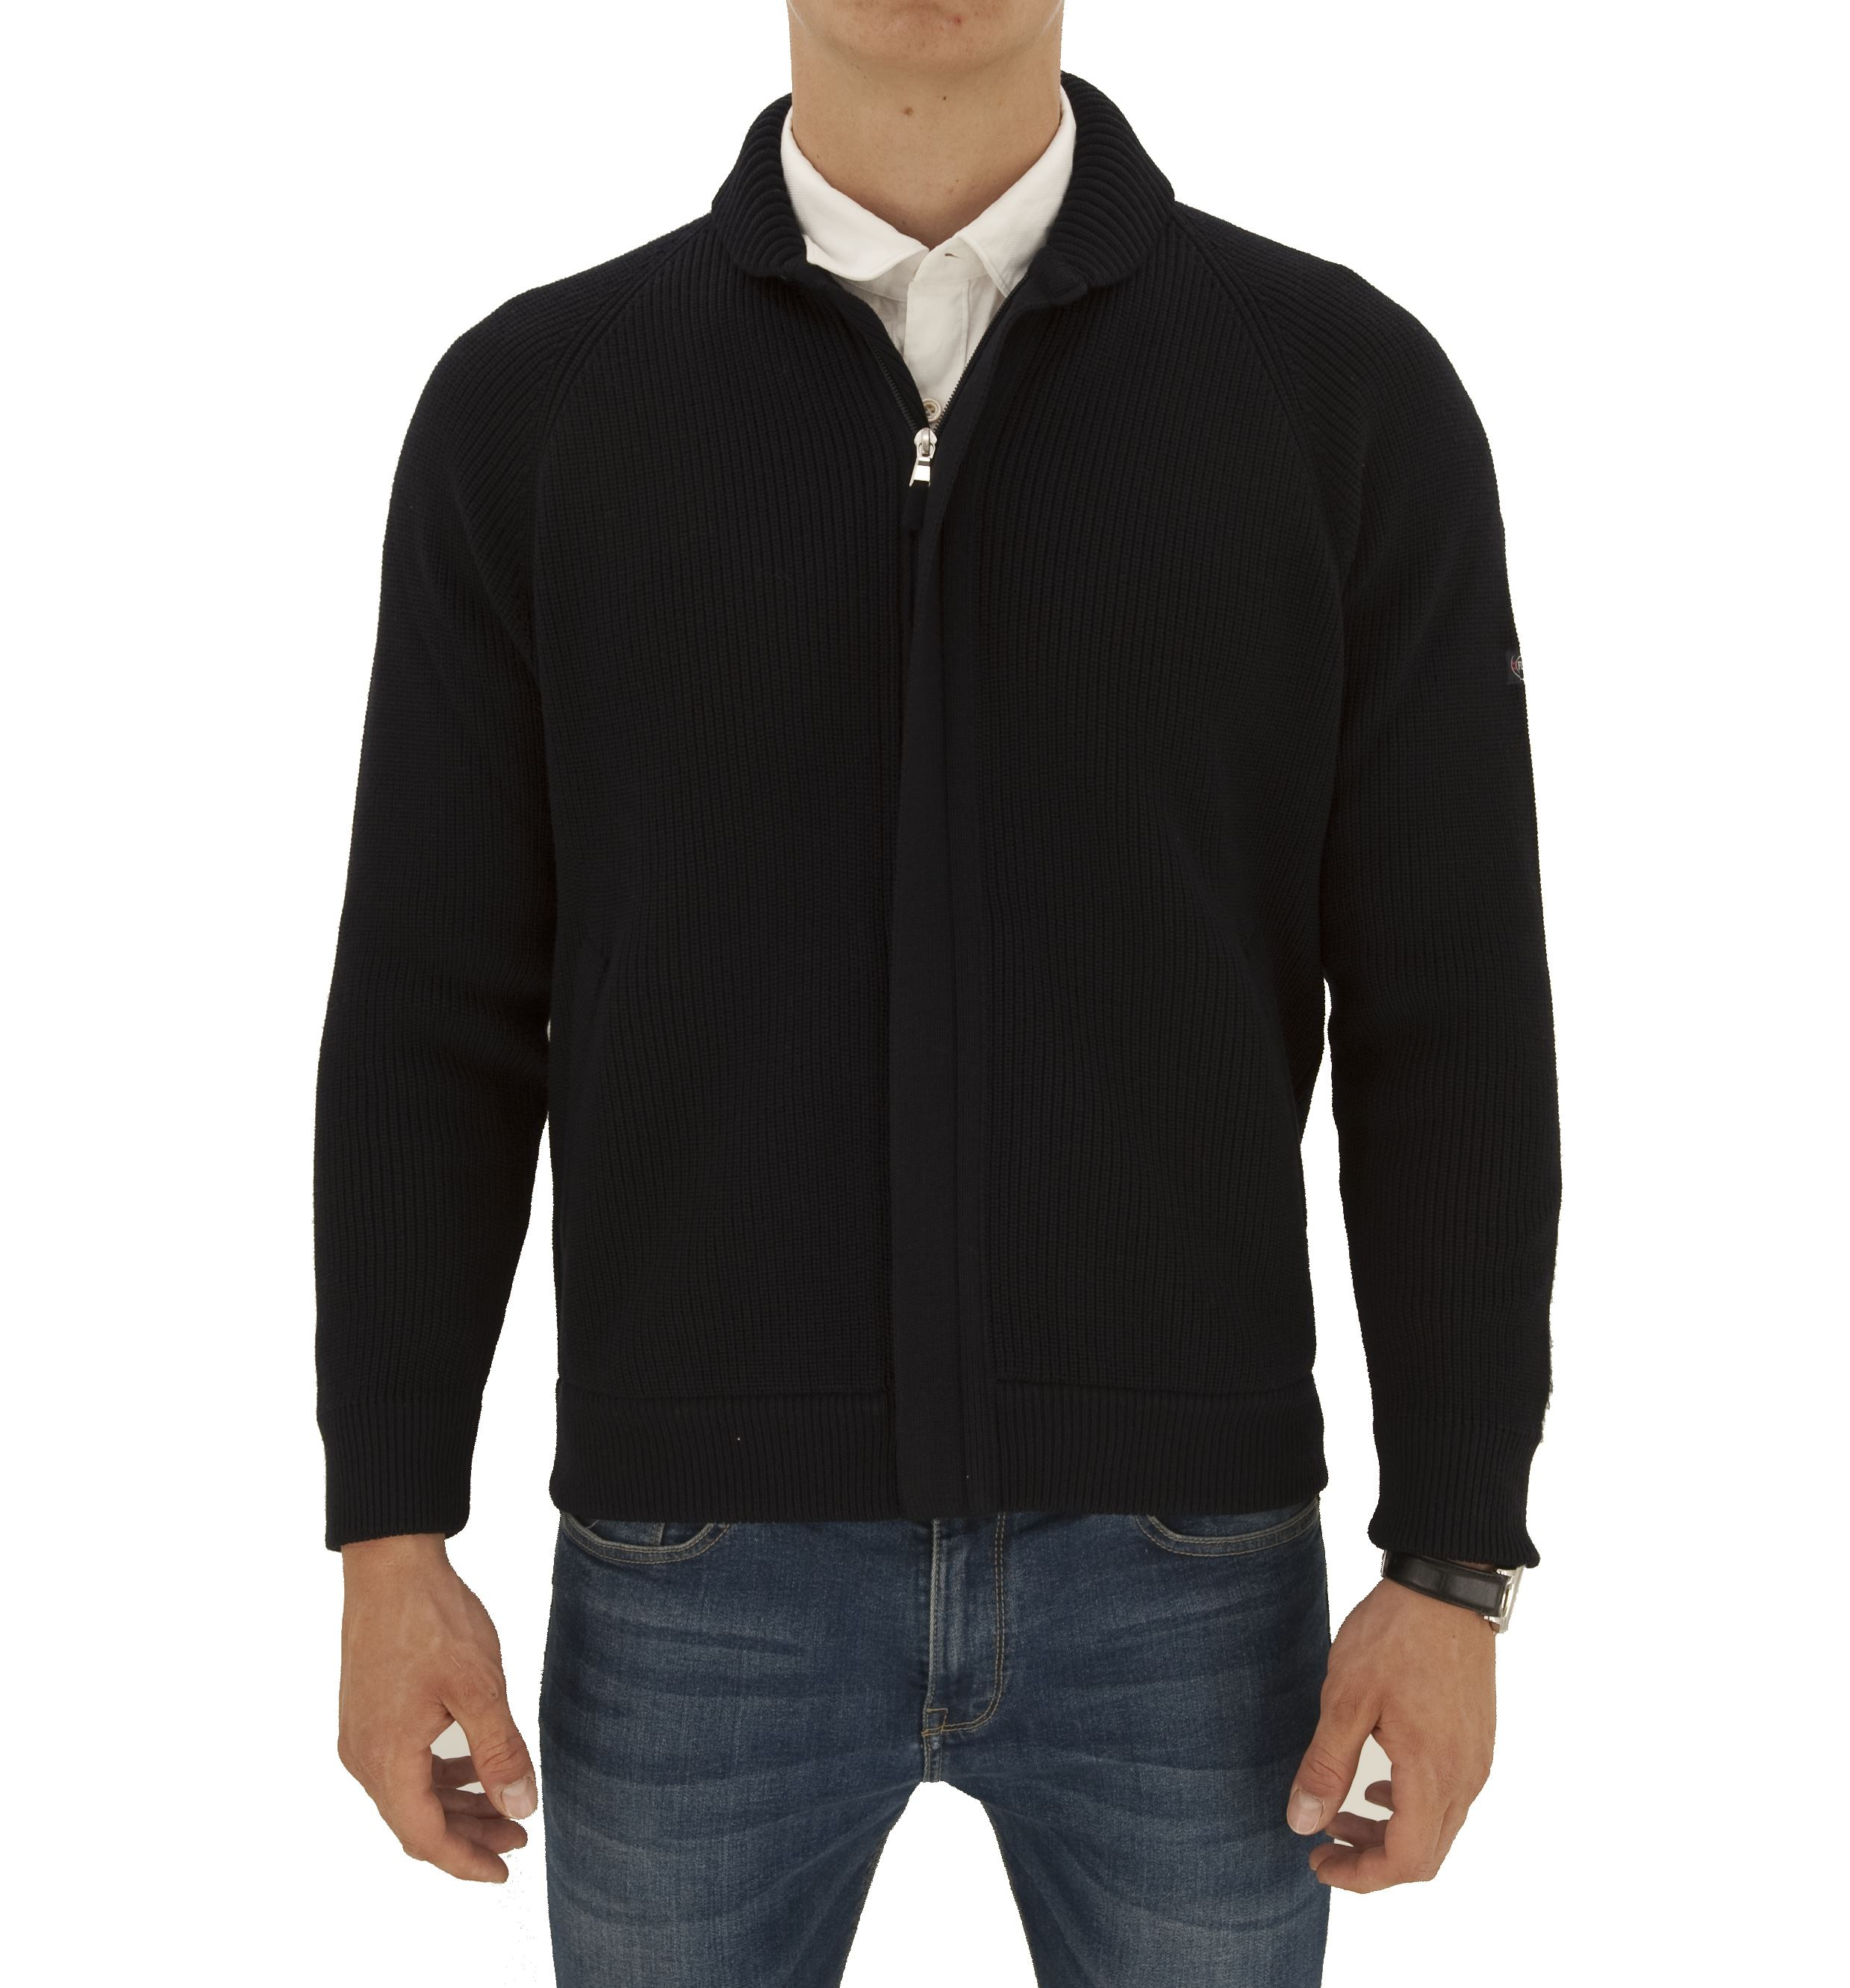 Picture of Slocum knitted zip jacket